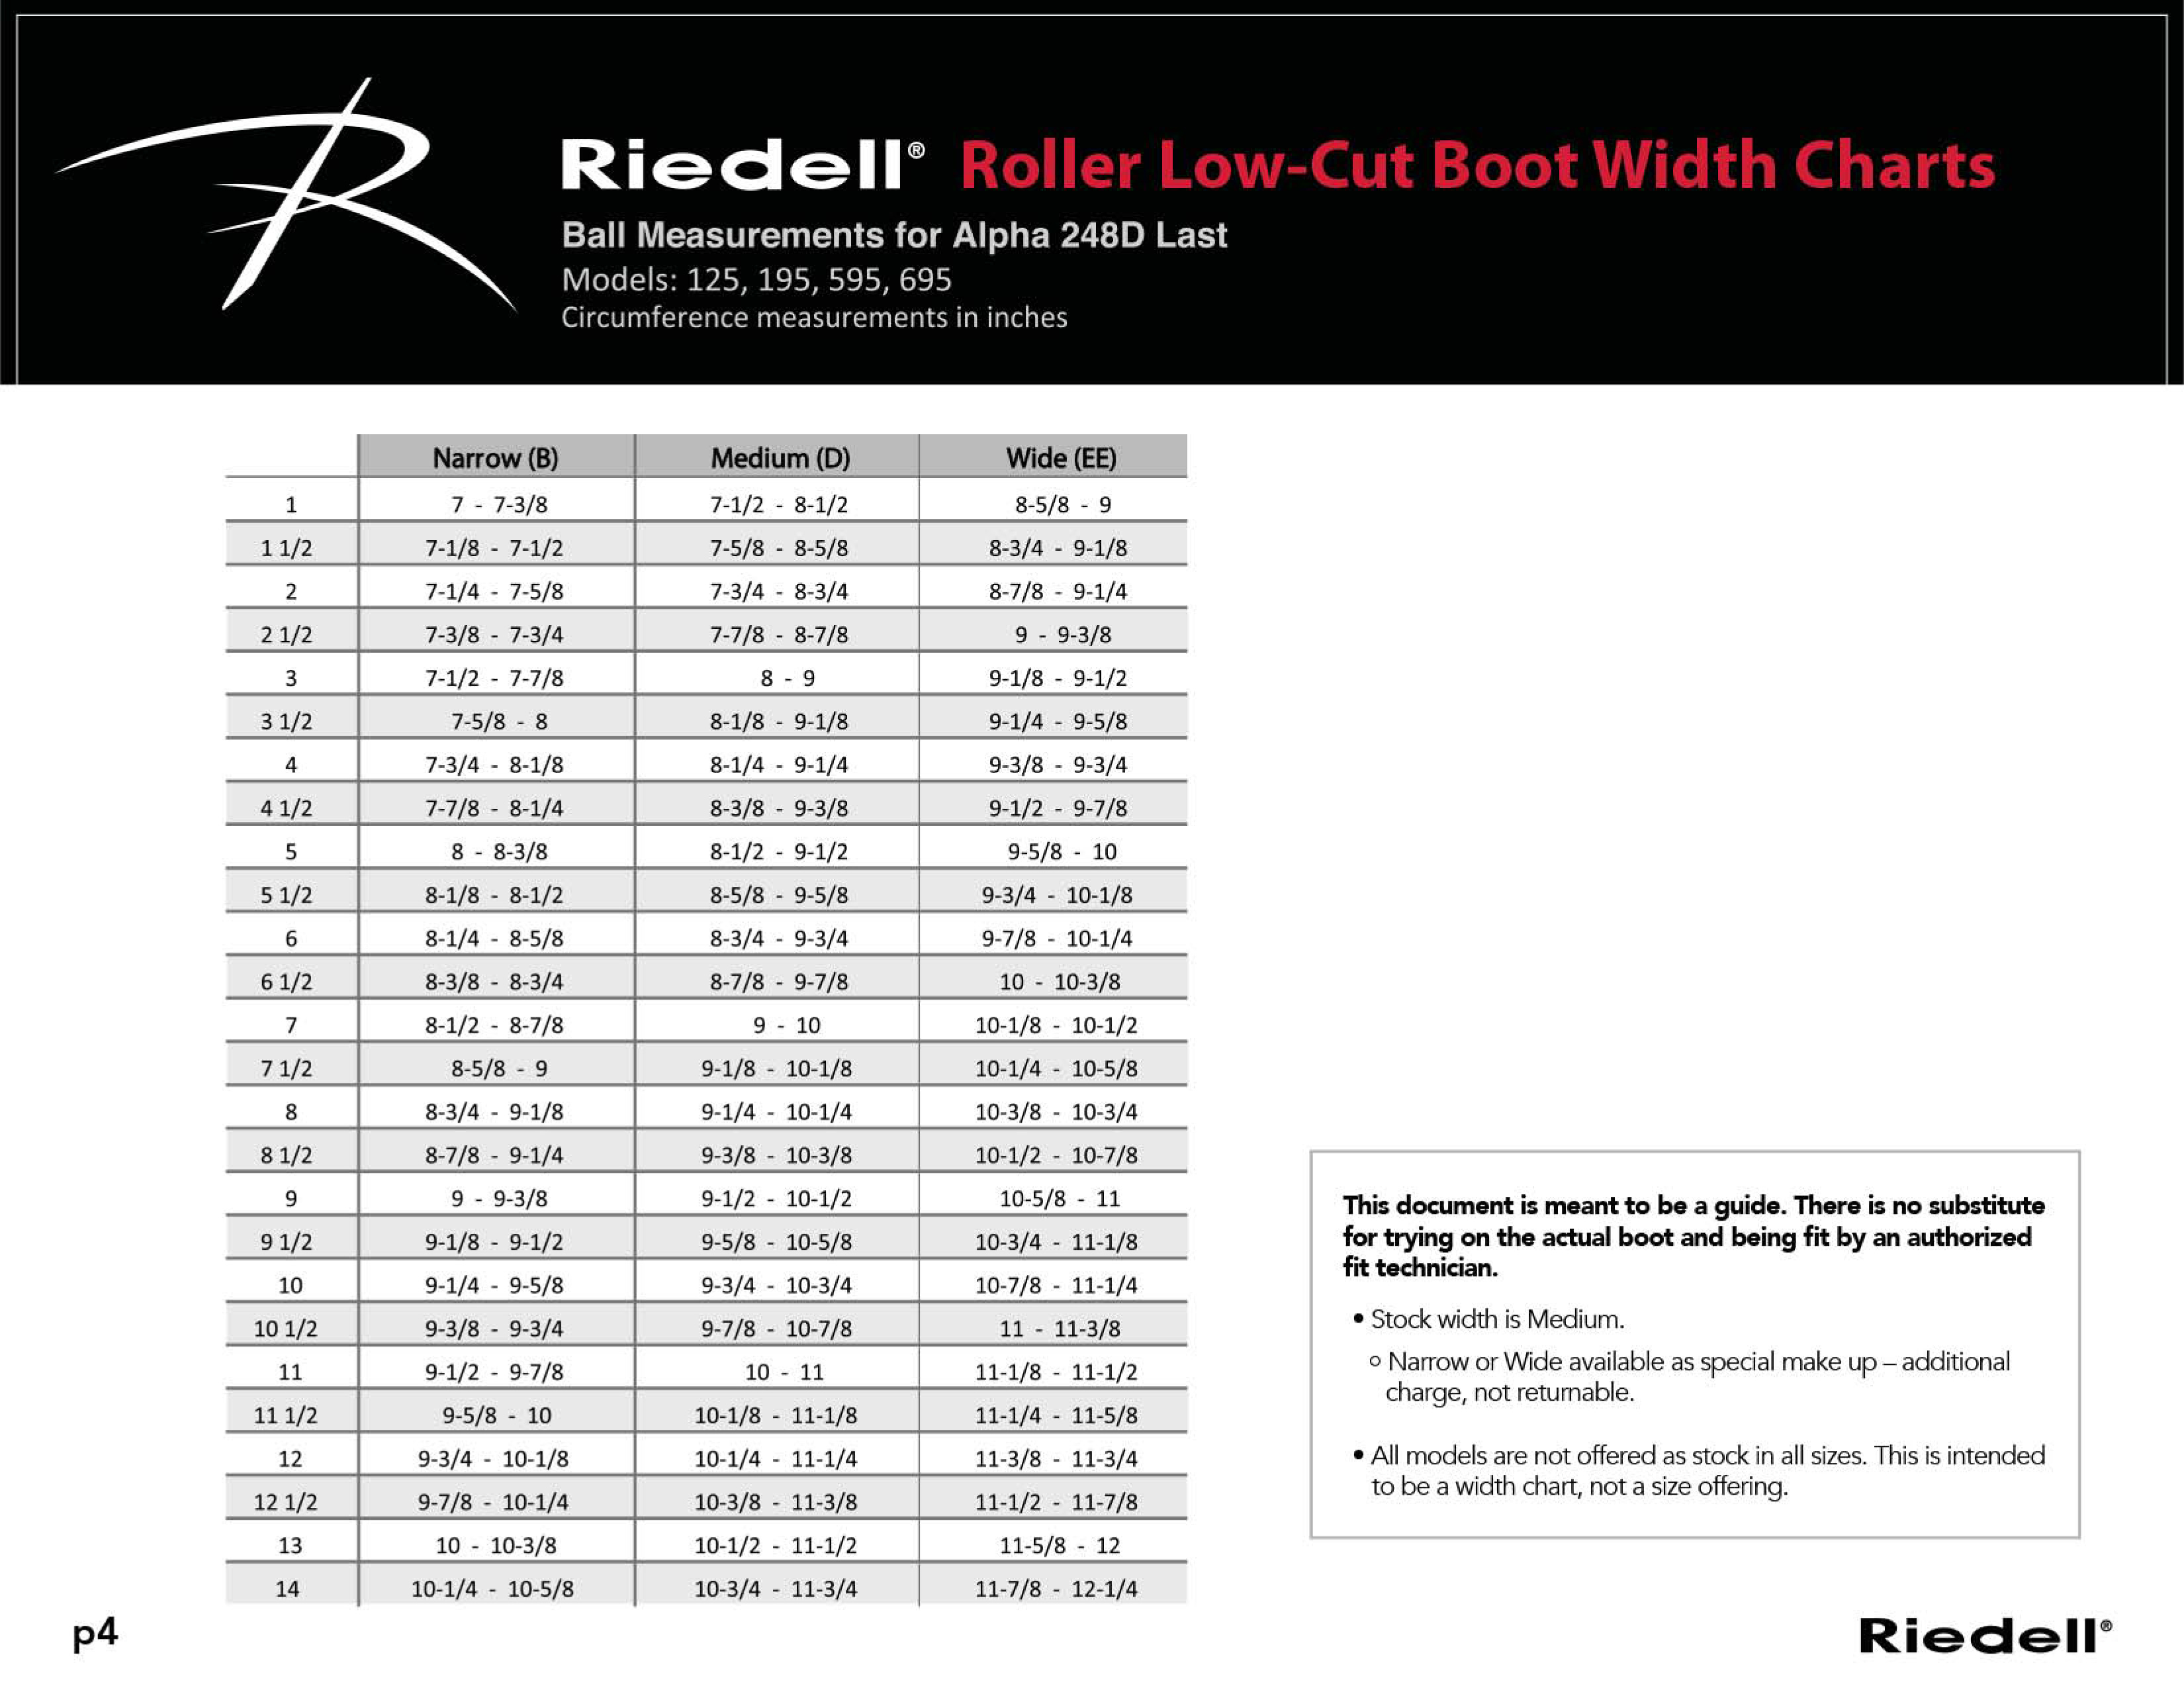 riedell-roller-sizing-guide-page-4.jpg